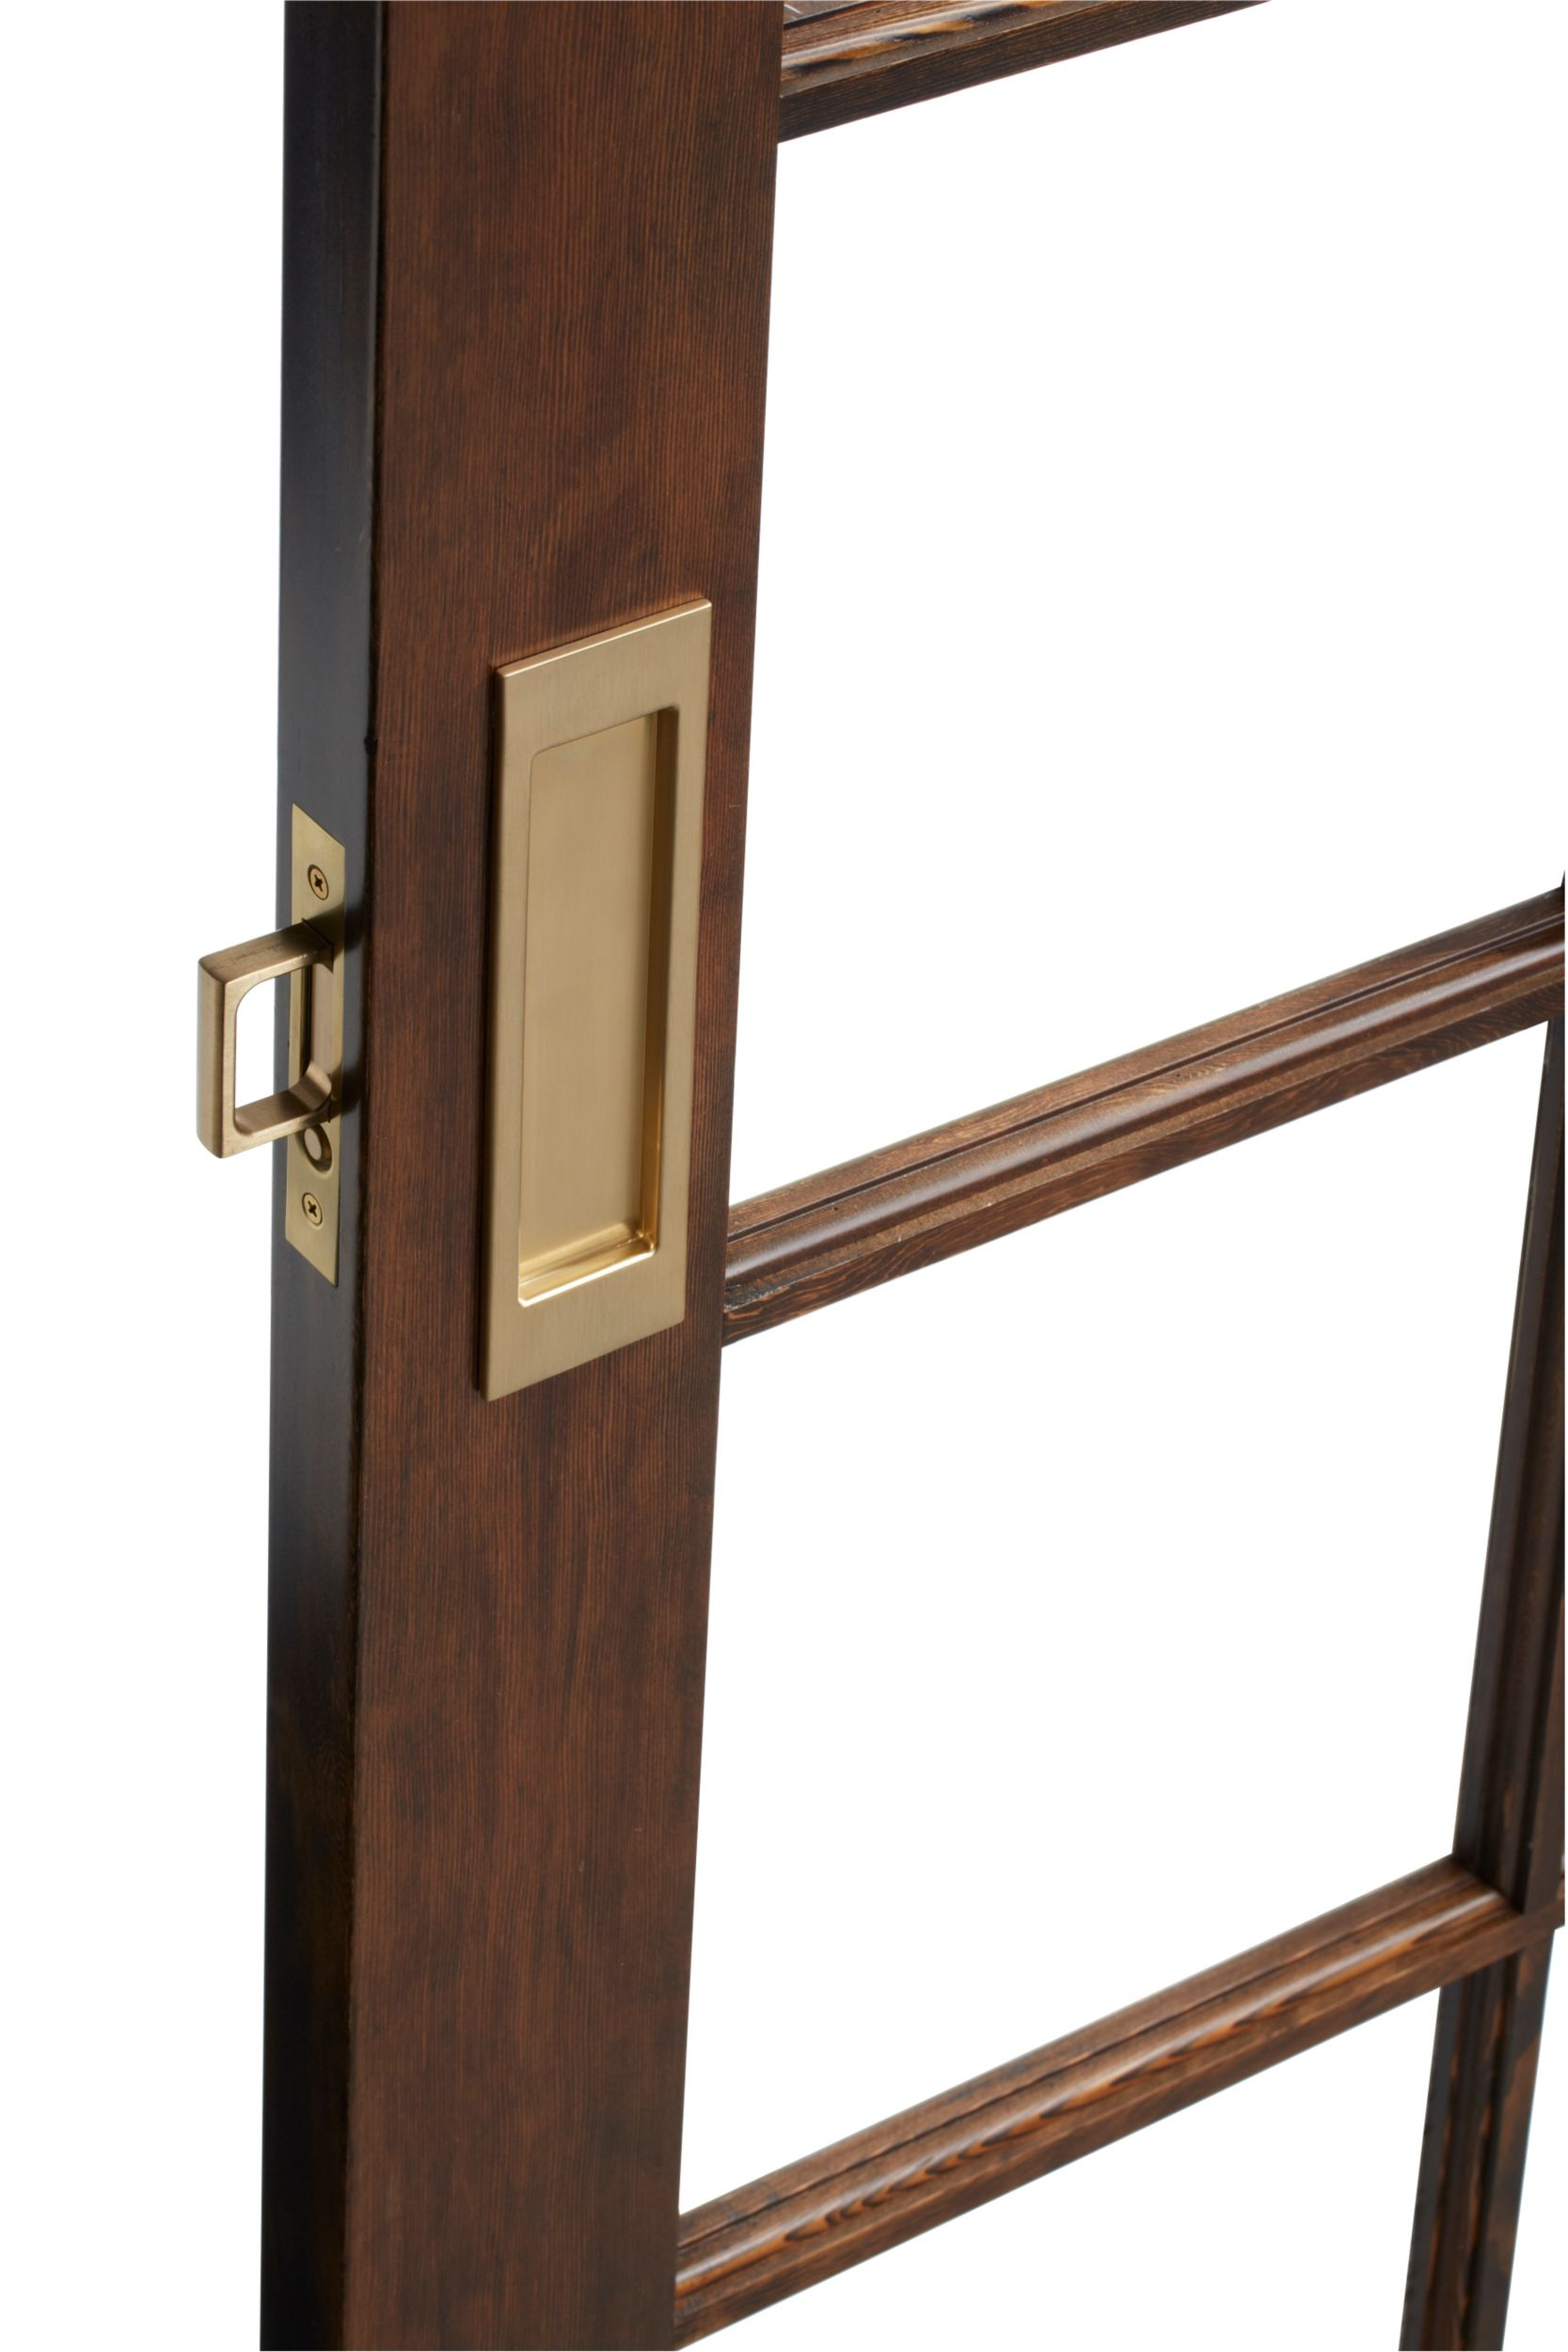 Pd005 Large Santa Monica Pocket Door Pd005 033